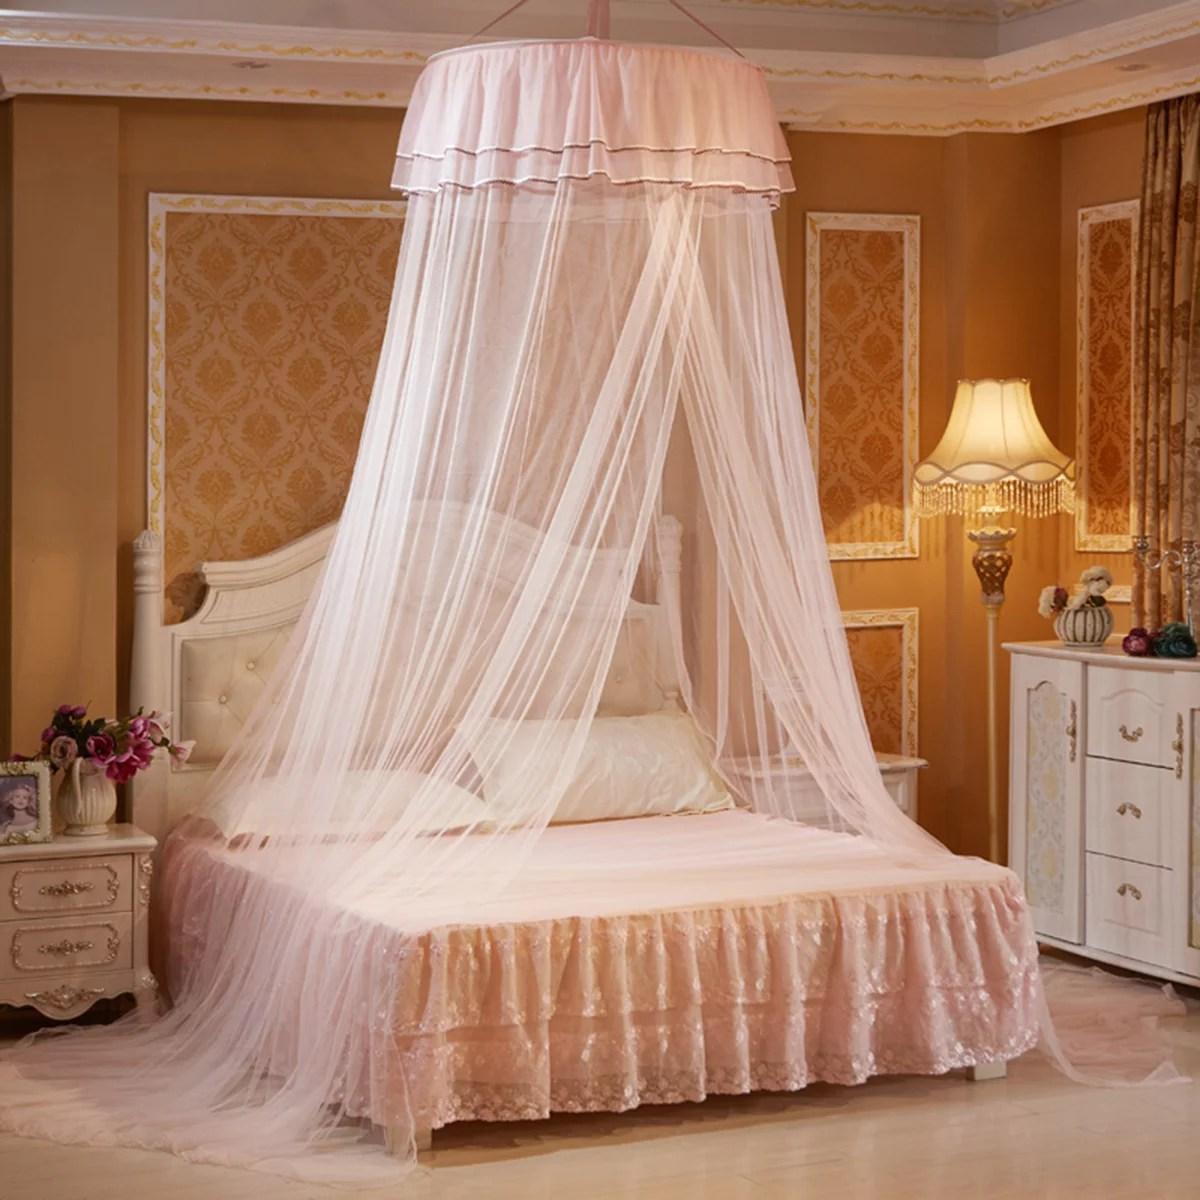 dome mosquito net princess bed curtain bed canopies round double lace curtain with 2 butterflies for decor anti fly insect for twin full queen